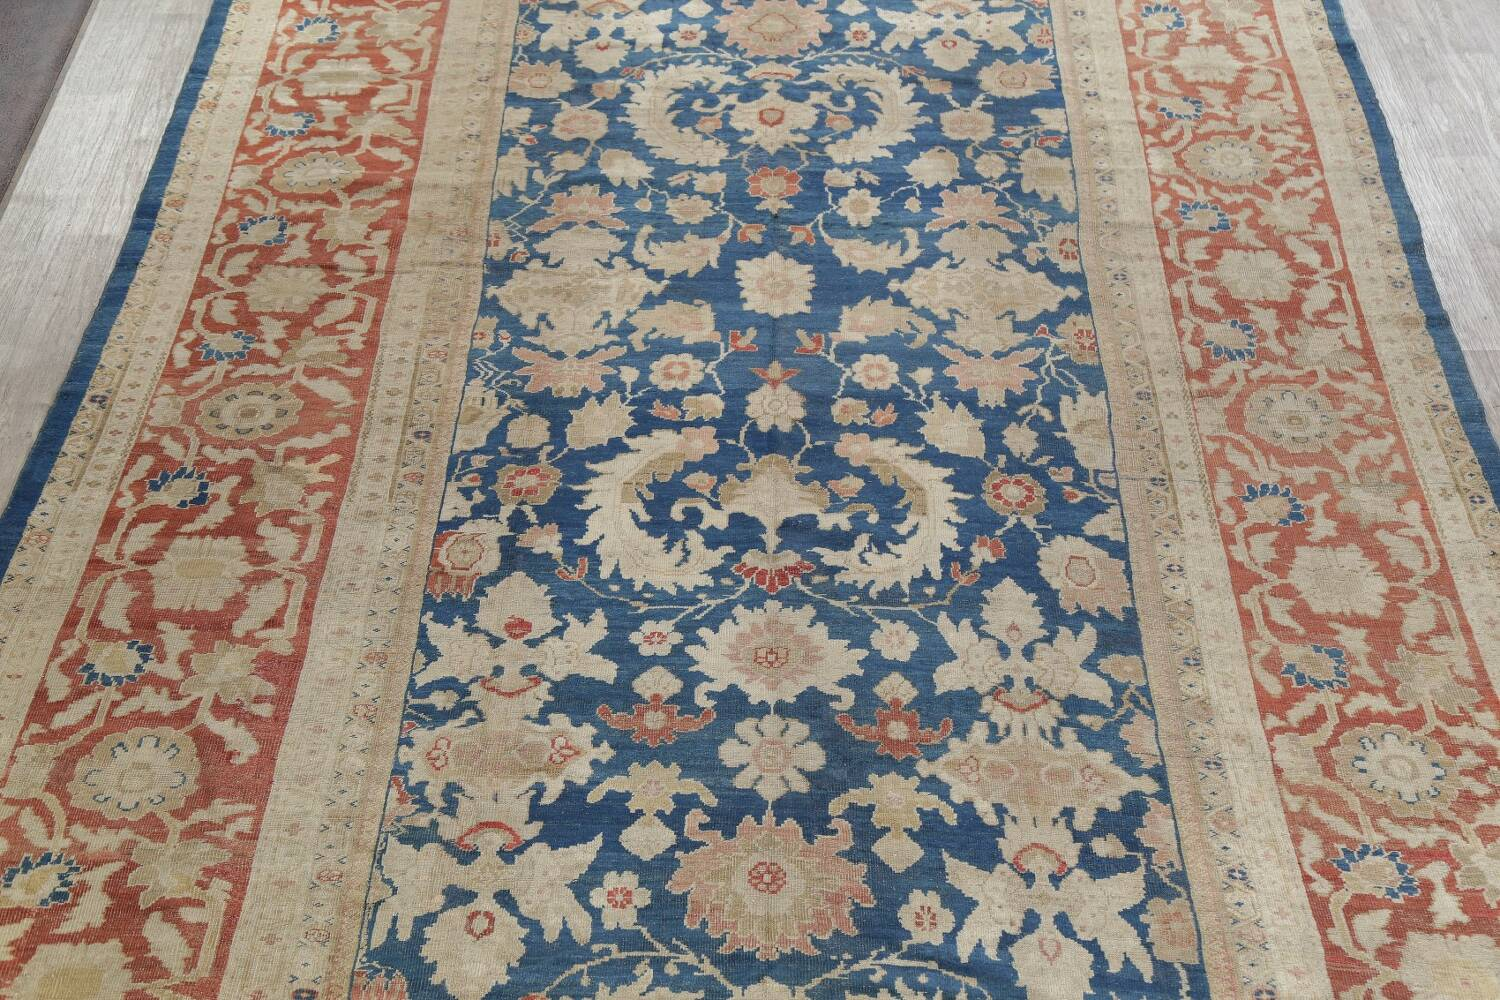 Antique Floral Sultanabad Persian Area Rug 10x16 Large image 3